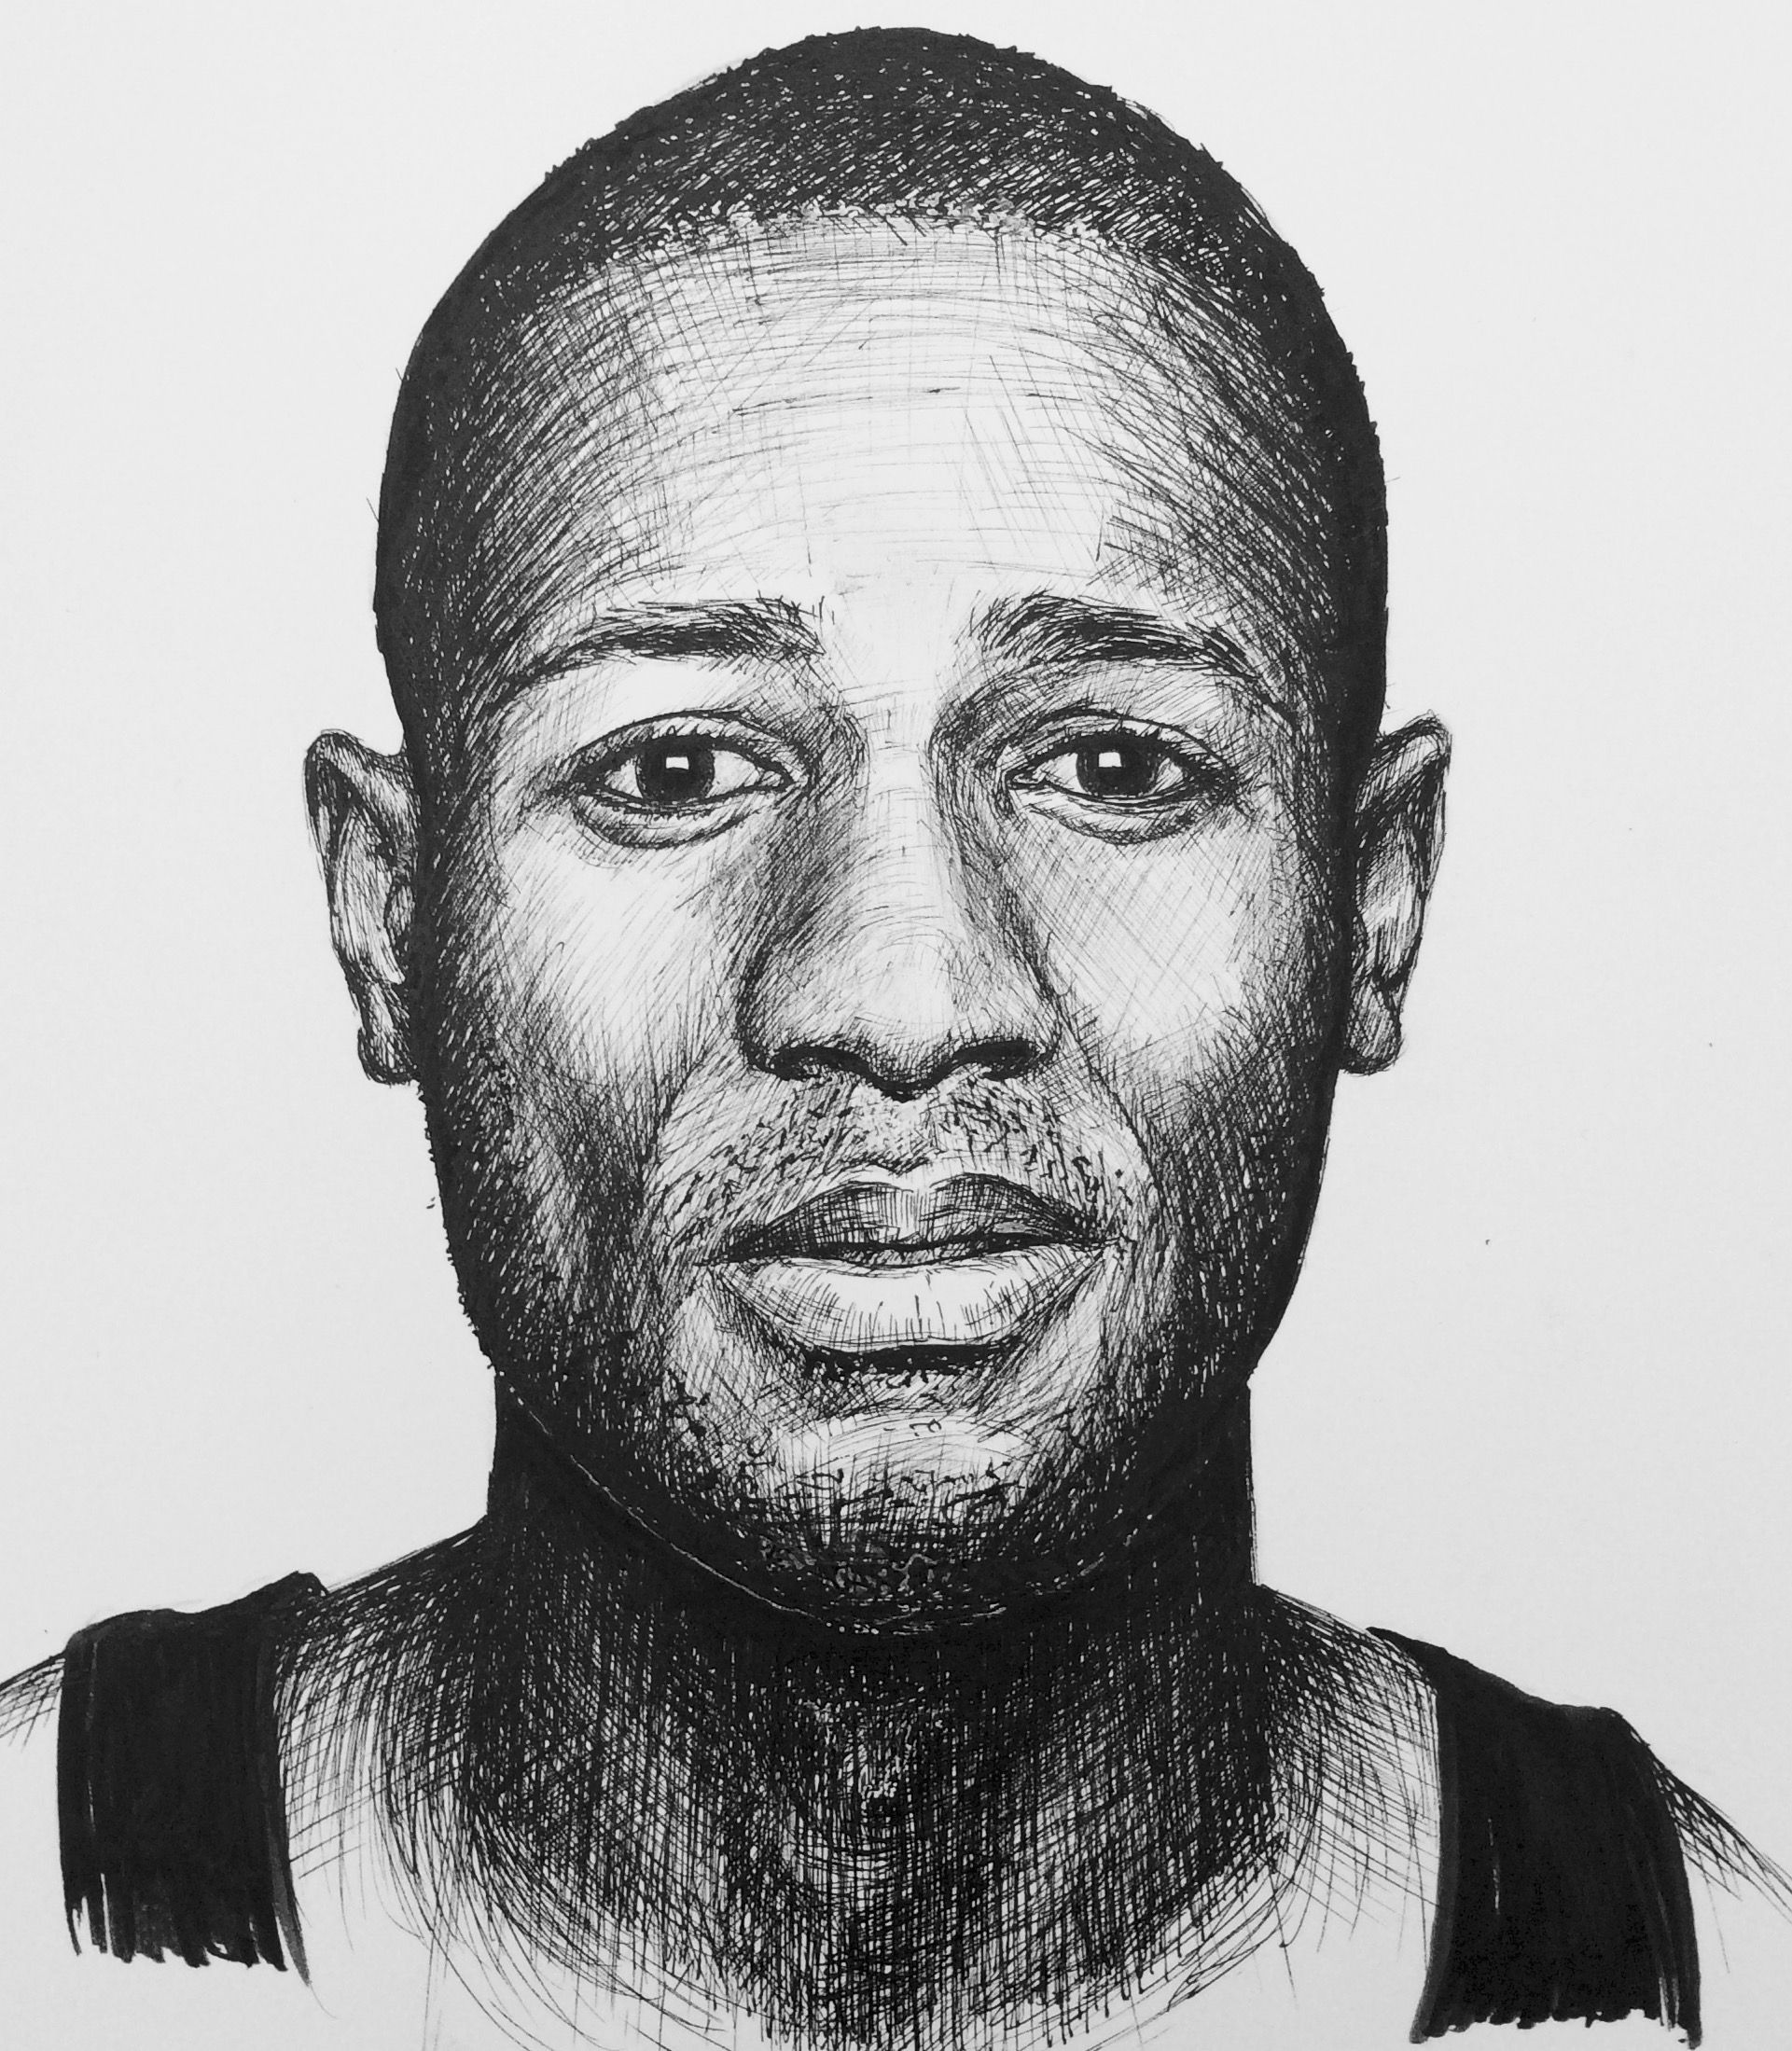 Learn how to draw portraits like this with nothing other